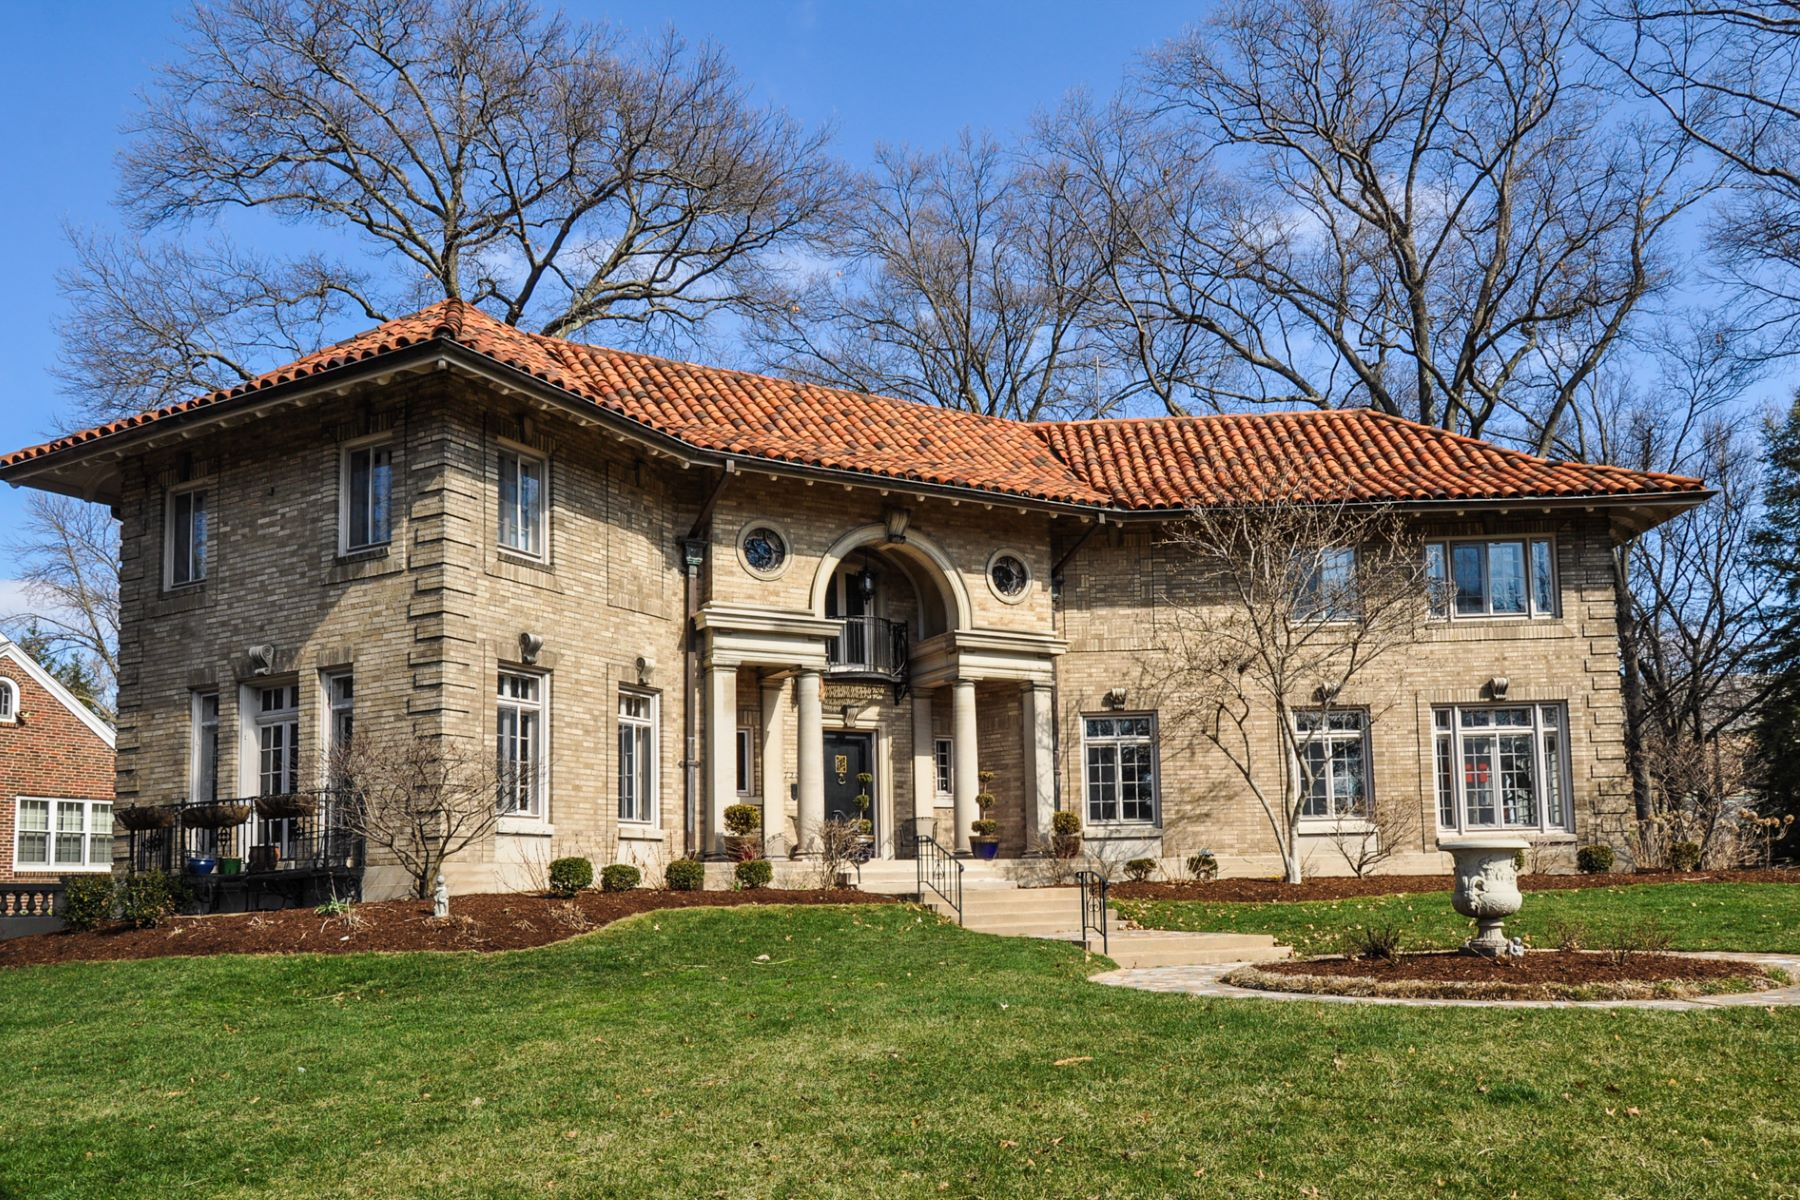 Additional photo for property listing at Italian Renaissance masterpiece 7201 Greenway Avenue University City, Missouri 63130 United States